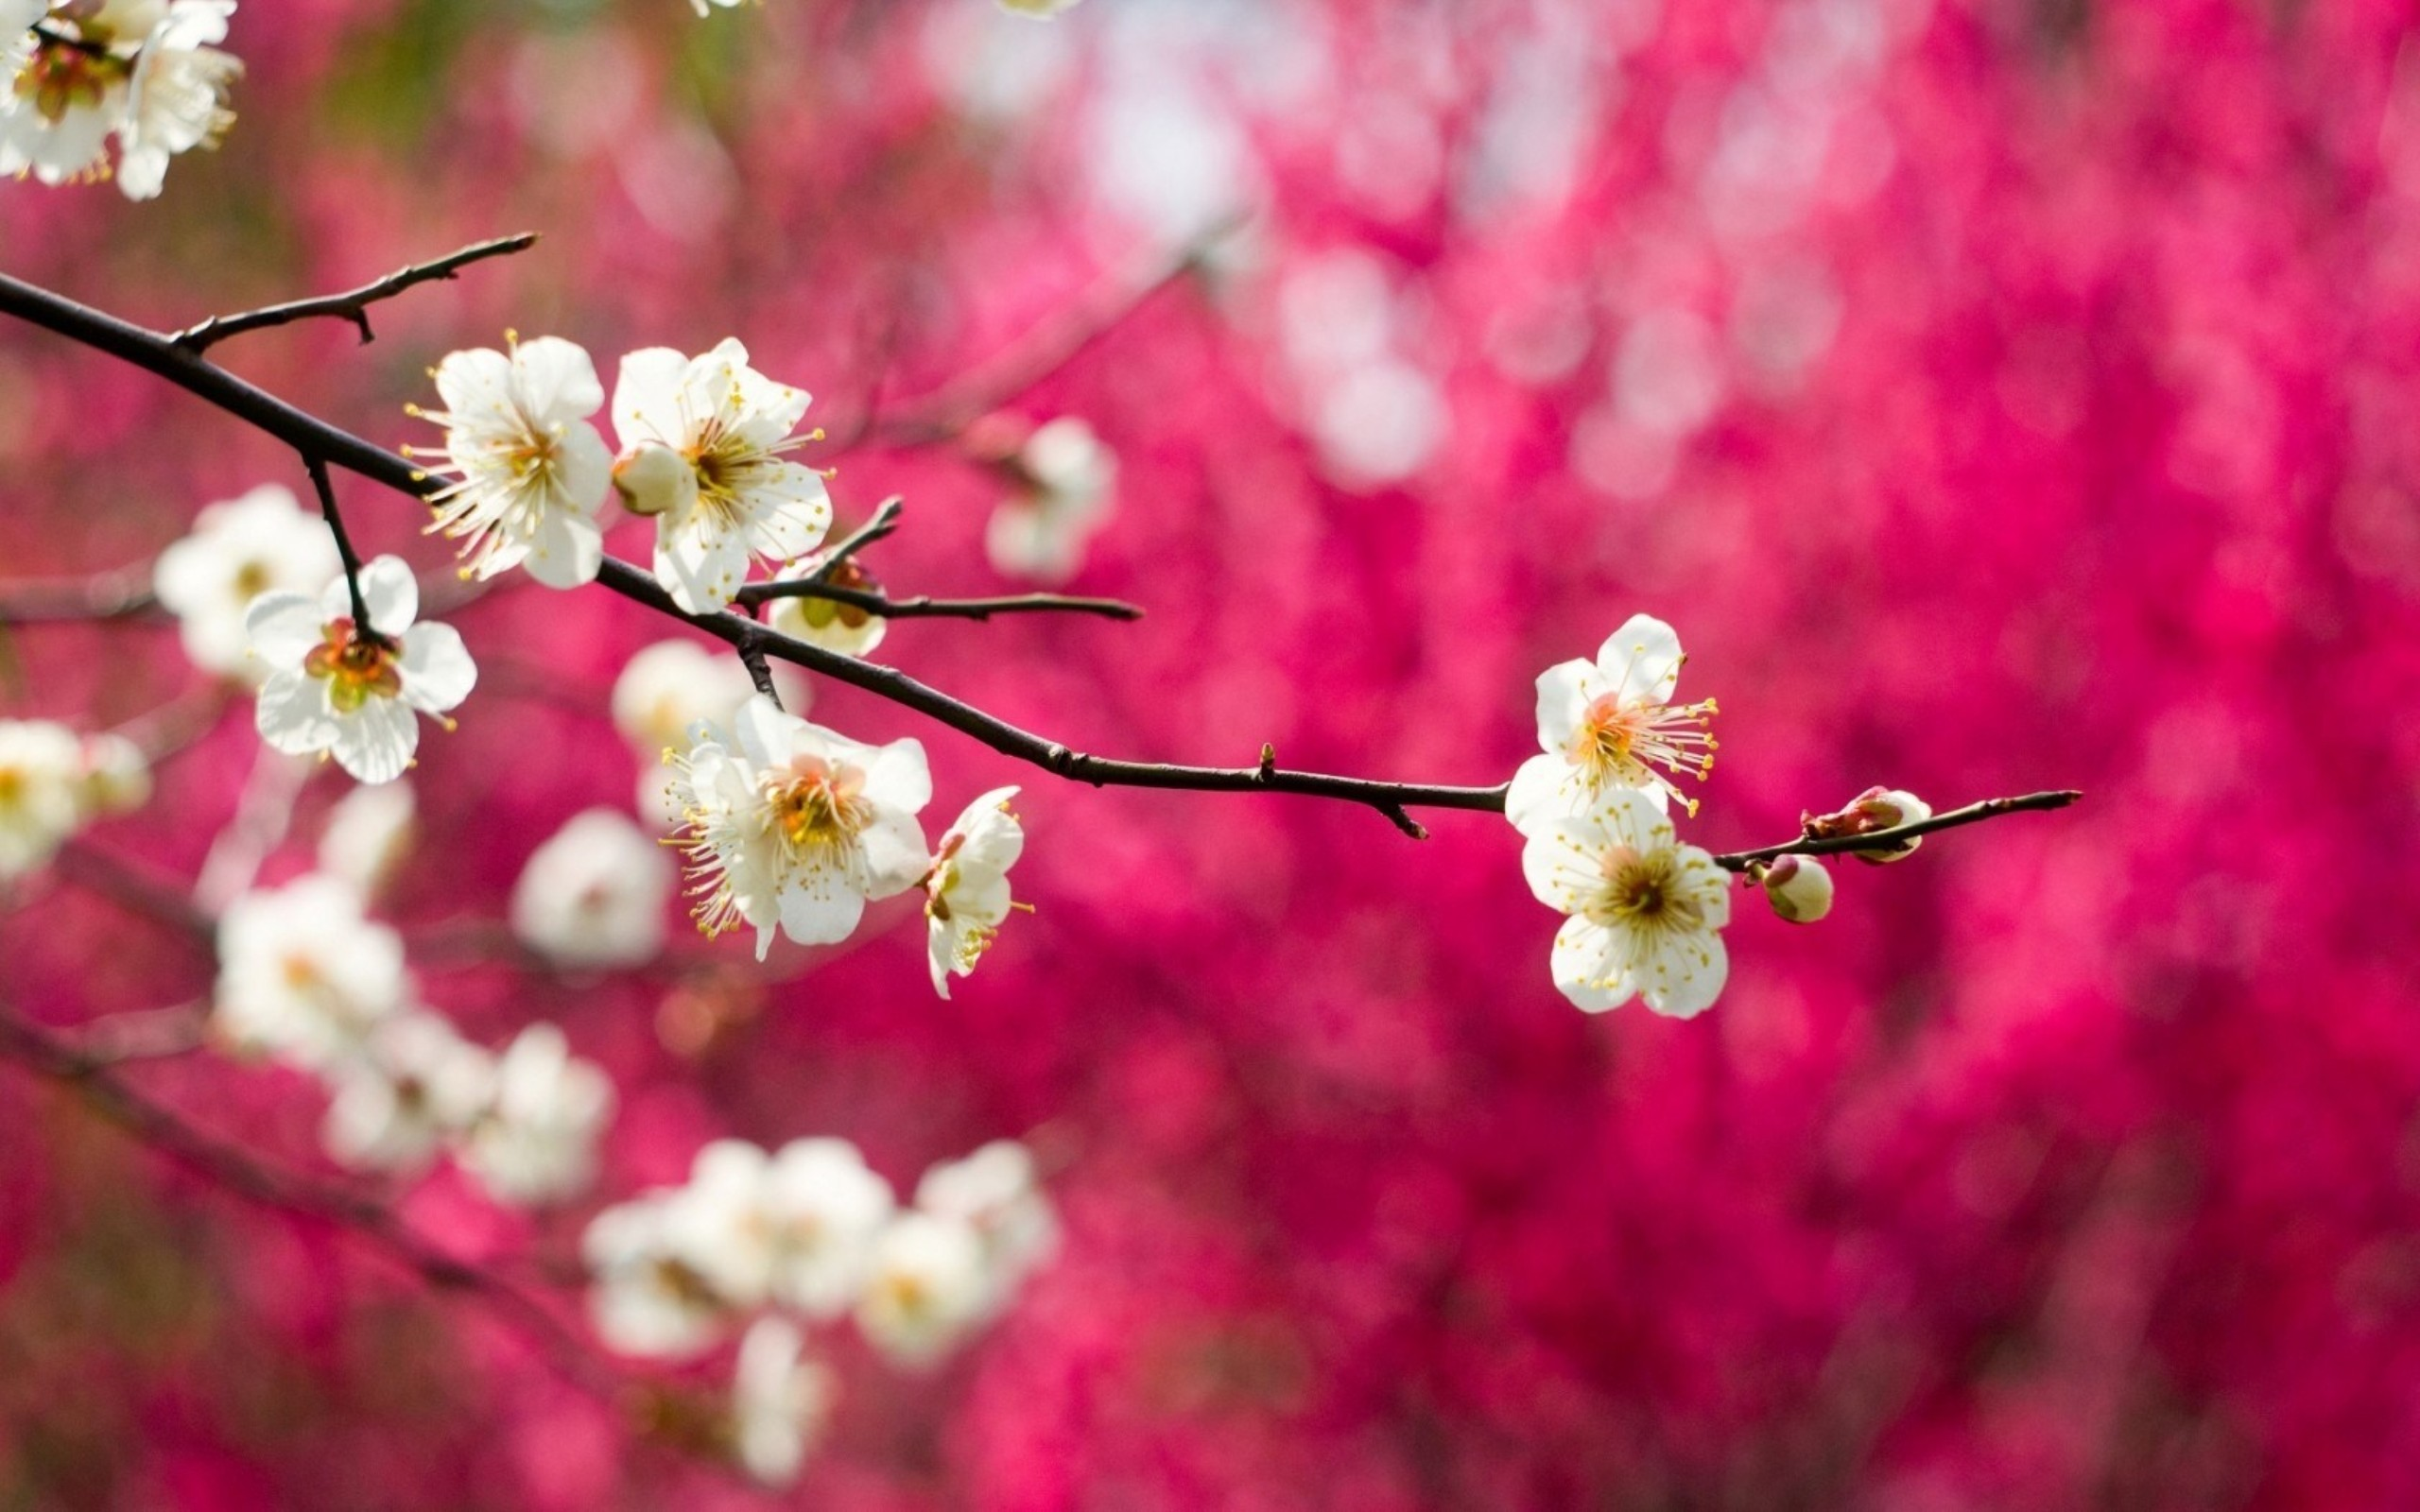 Res: 2560x1600, Spring Nature Wallpaper